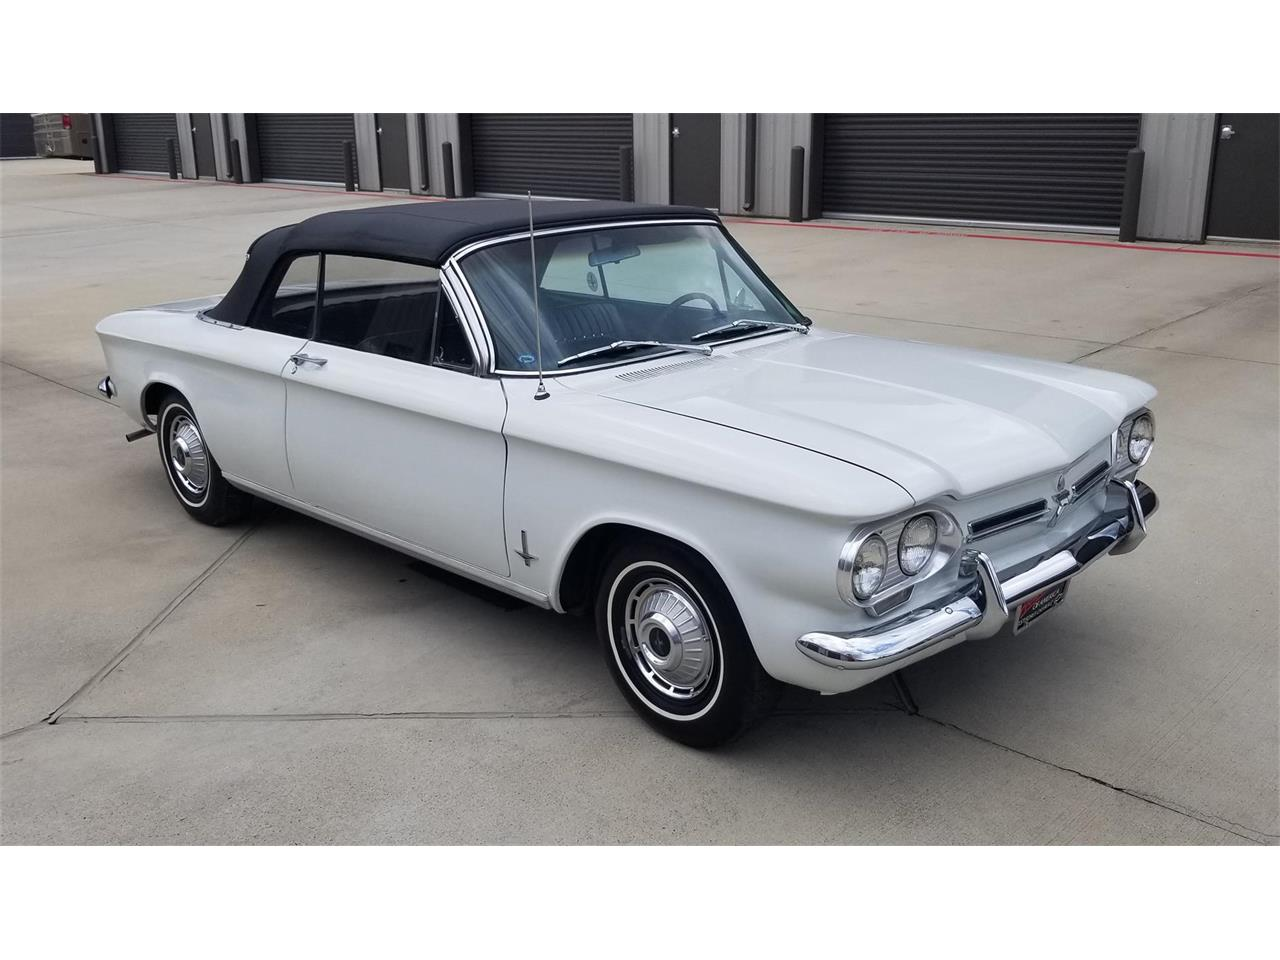 Large Picture of '62 Corvair Monza - QEEG